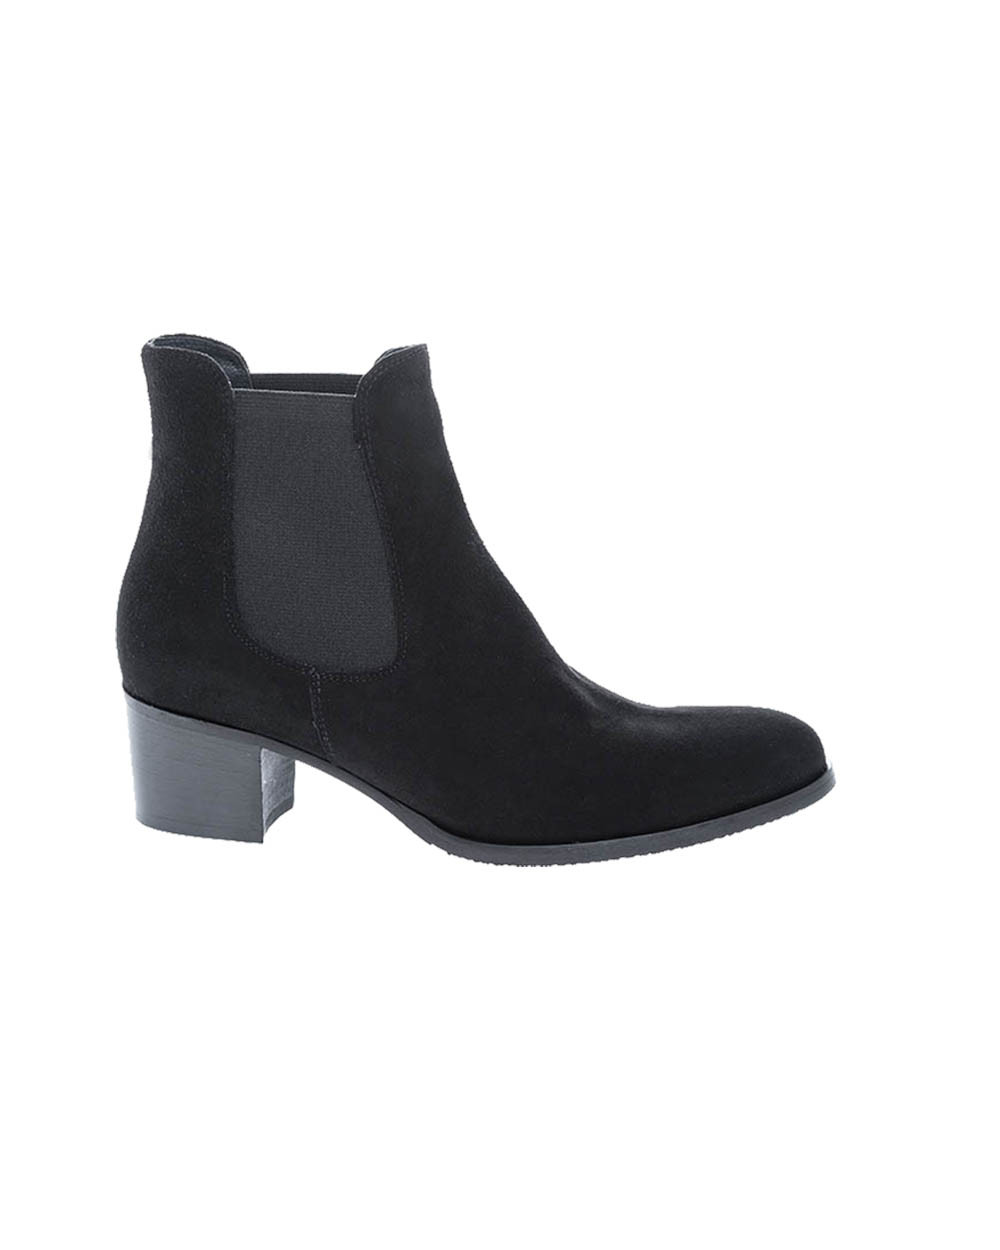 Leather boots with 2 elastics rounded tip 50